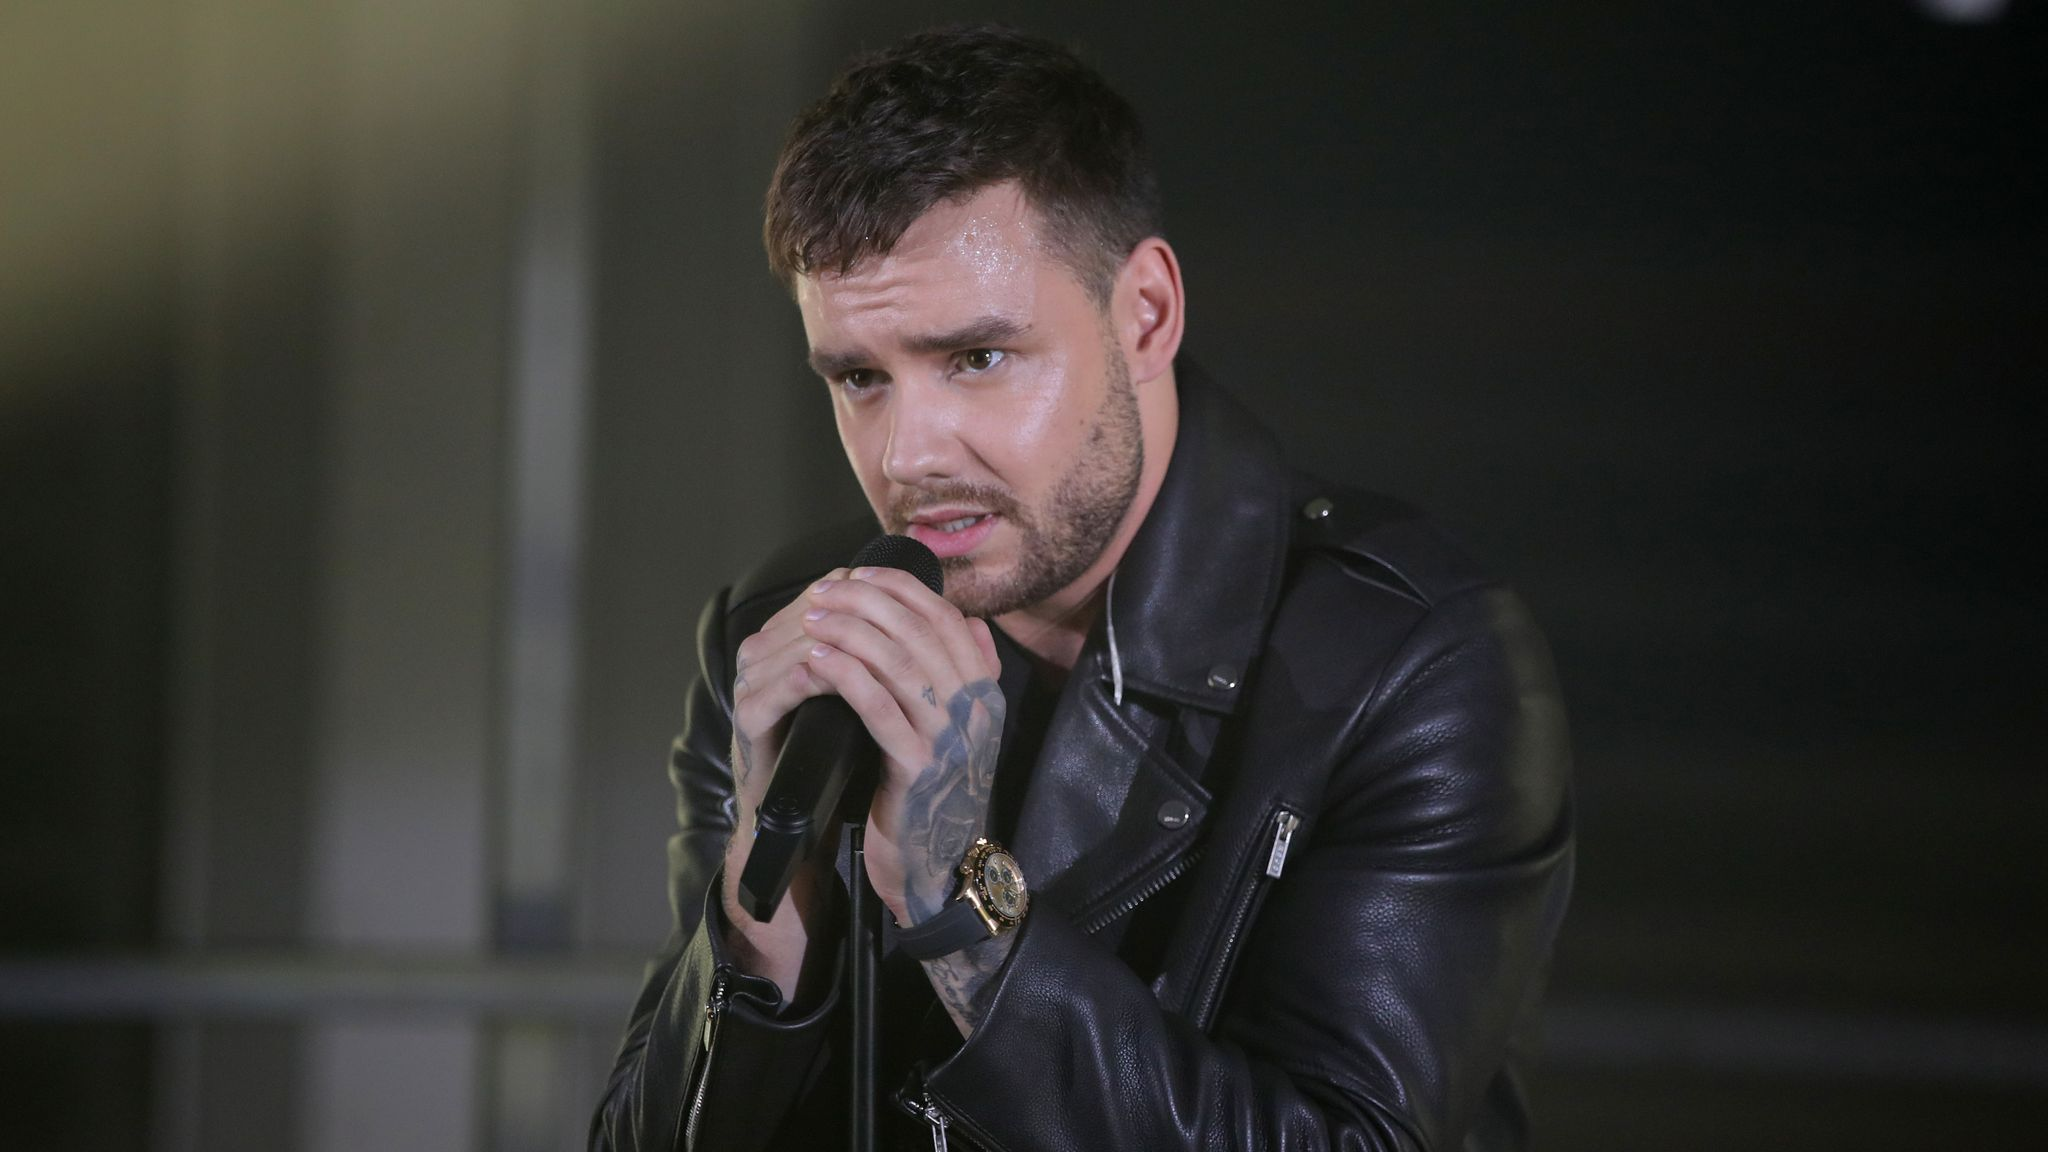 'I'm lucky to be here': Liam Payne opens up about suicidal thoughts and relationship with Cheryl